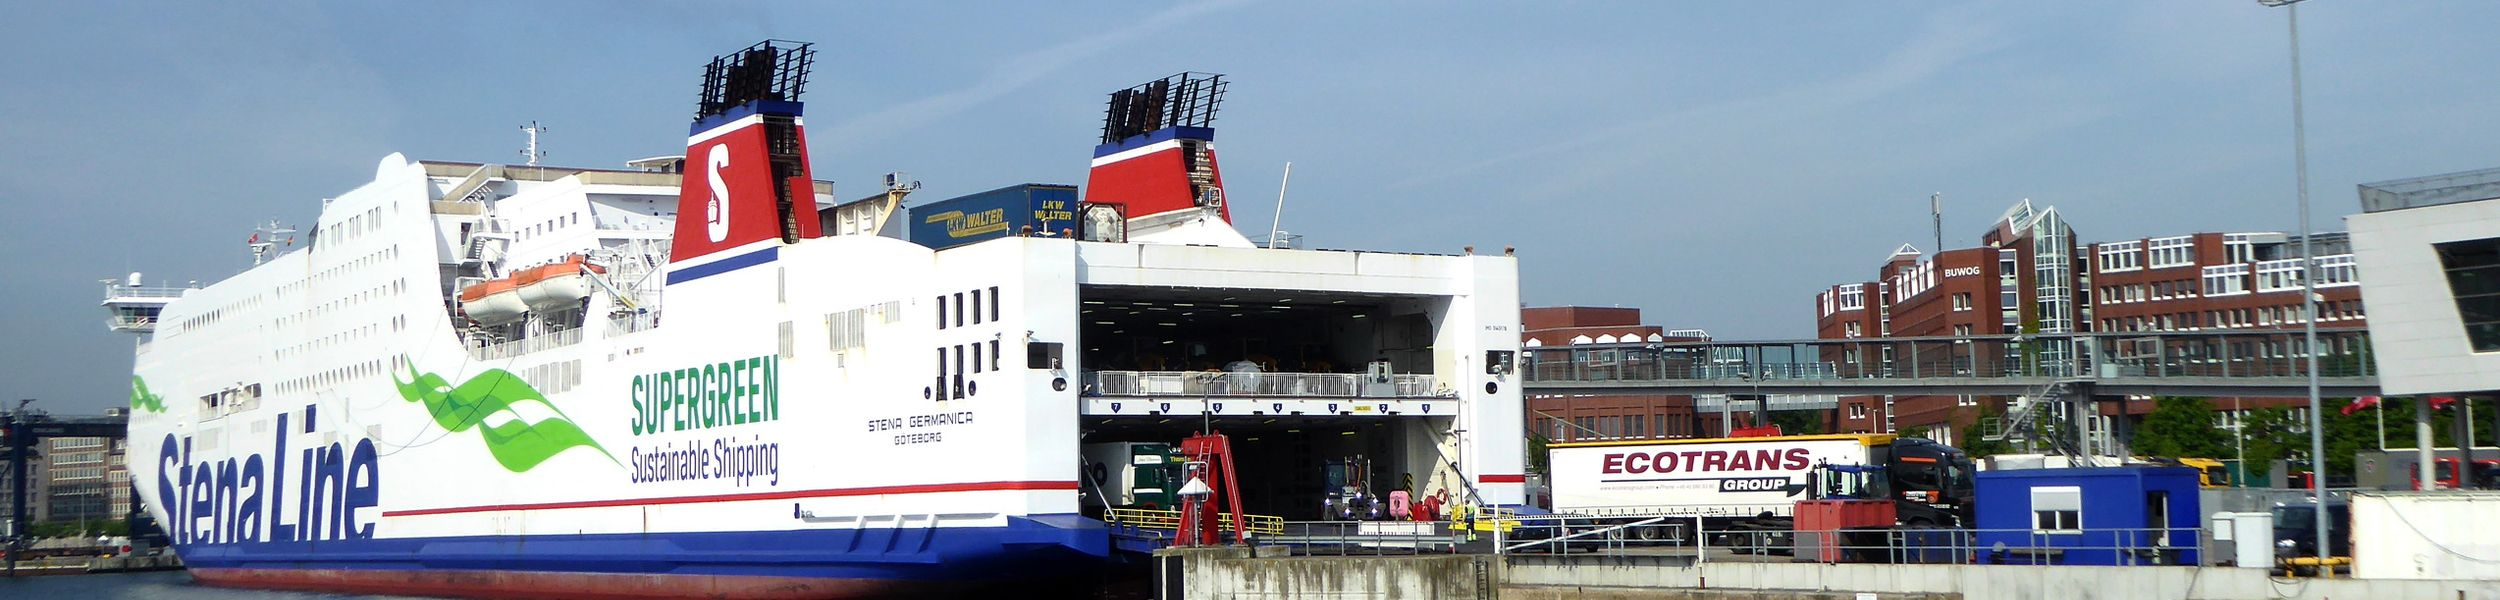 Book color line ferry - Ferries Online Booking